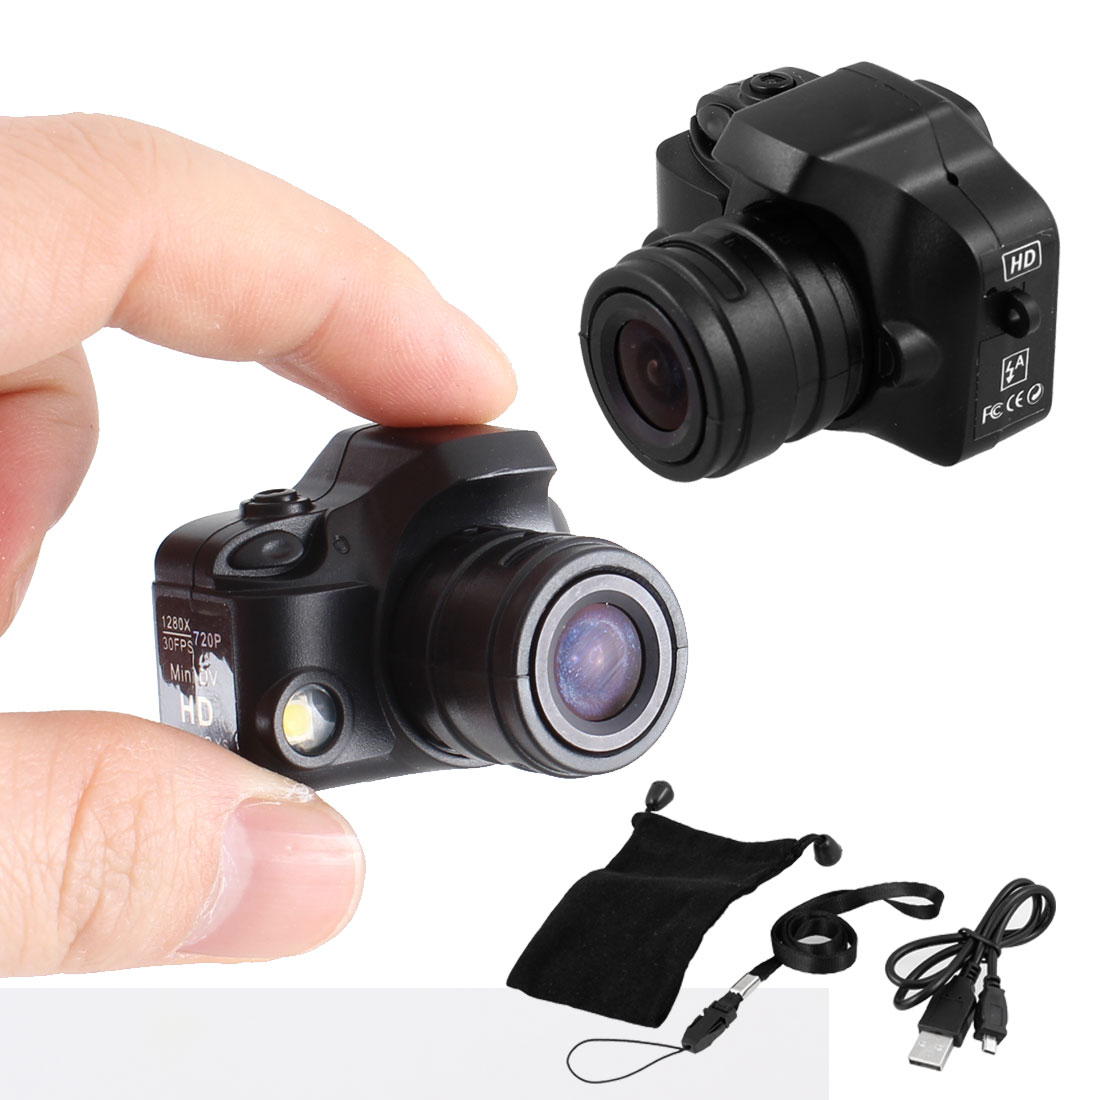 F5000 30fps 720P High Definiton Digital Video Camera Mini DV Camcorder